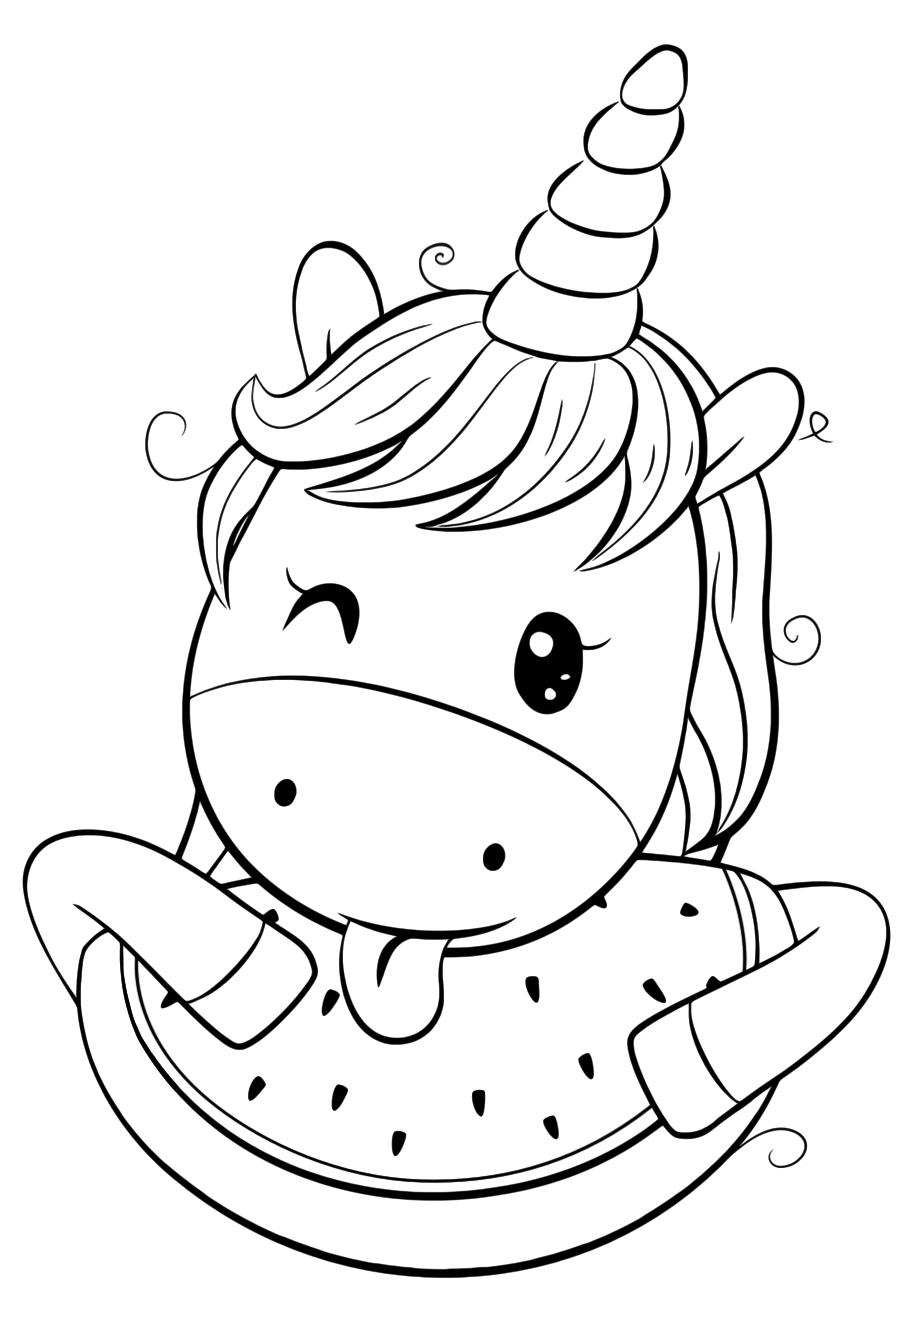 cute unicorn coloring pages - youloveit